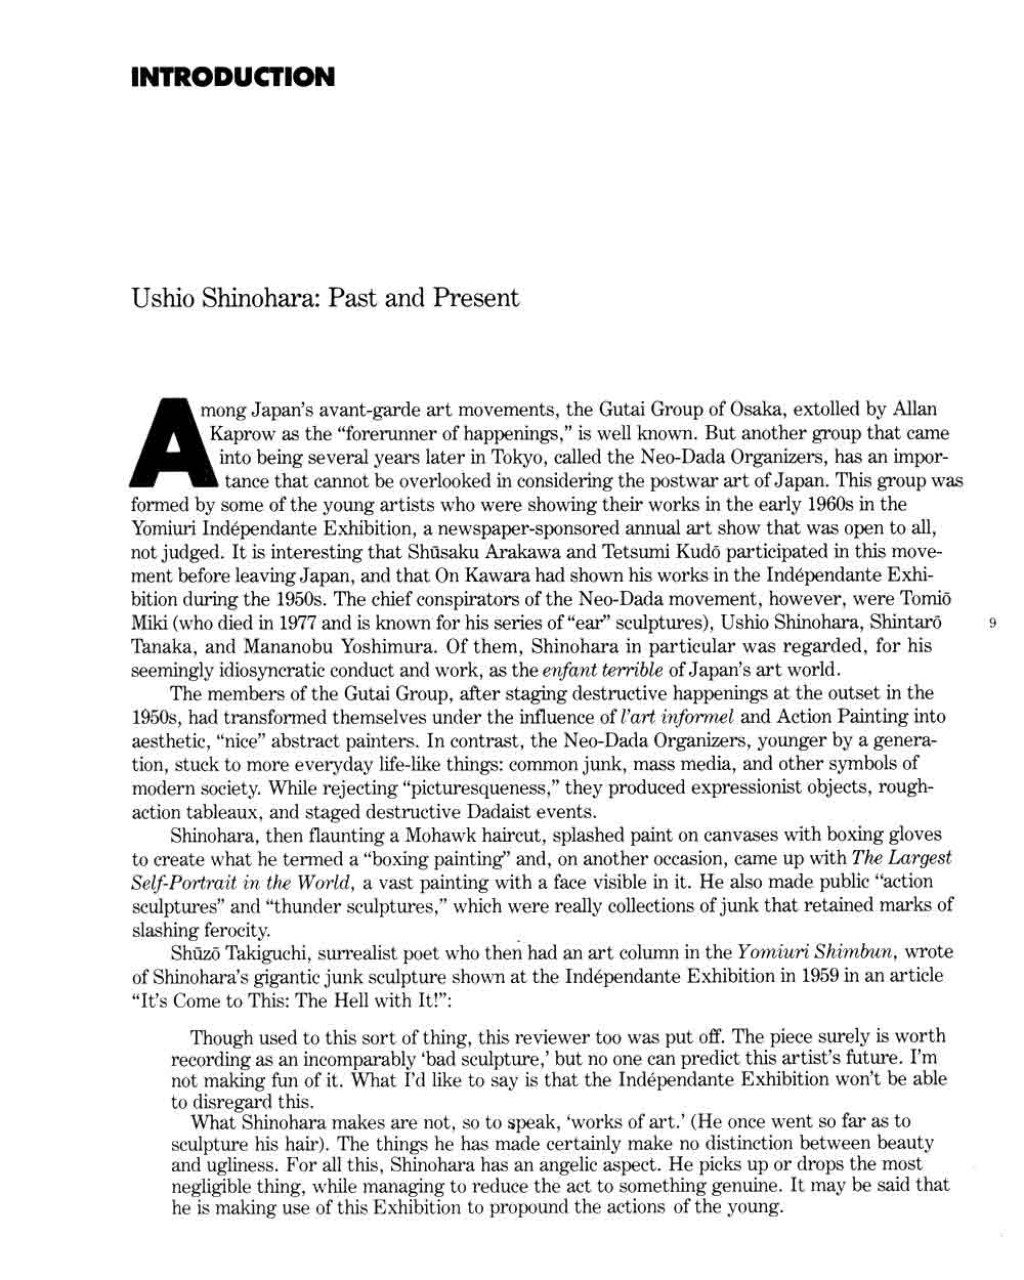 003 In Essay Citation Example Ushio Shinohara Past And Present Pg 1 Striking Text Parenthetical Apa Multiple Authors Website Large